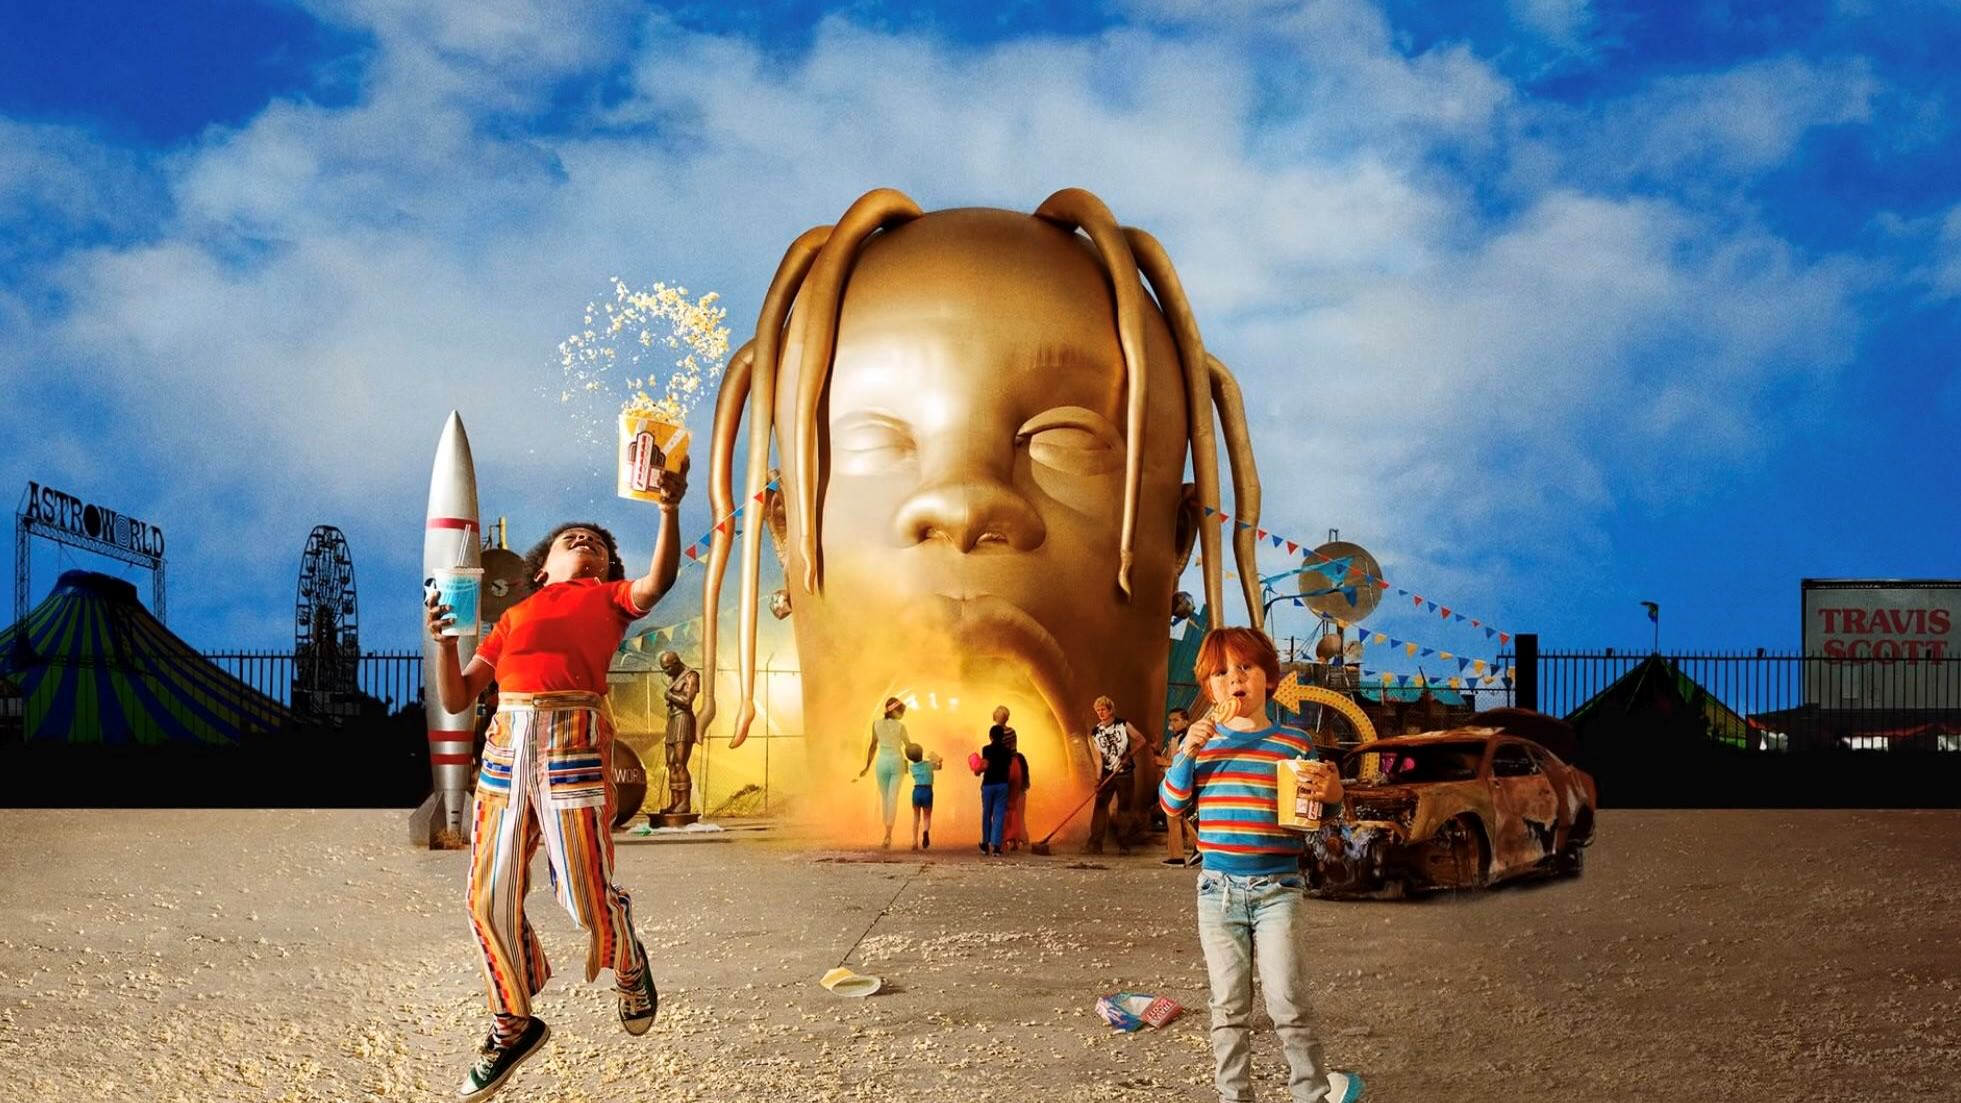 Travis Scott: 'Astroworld'